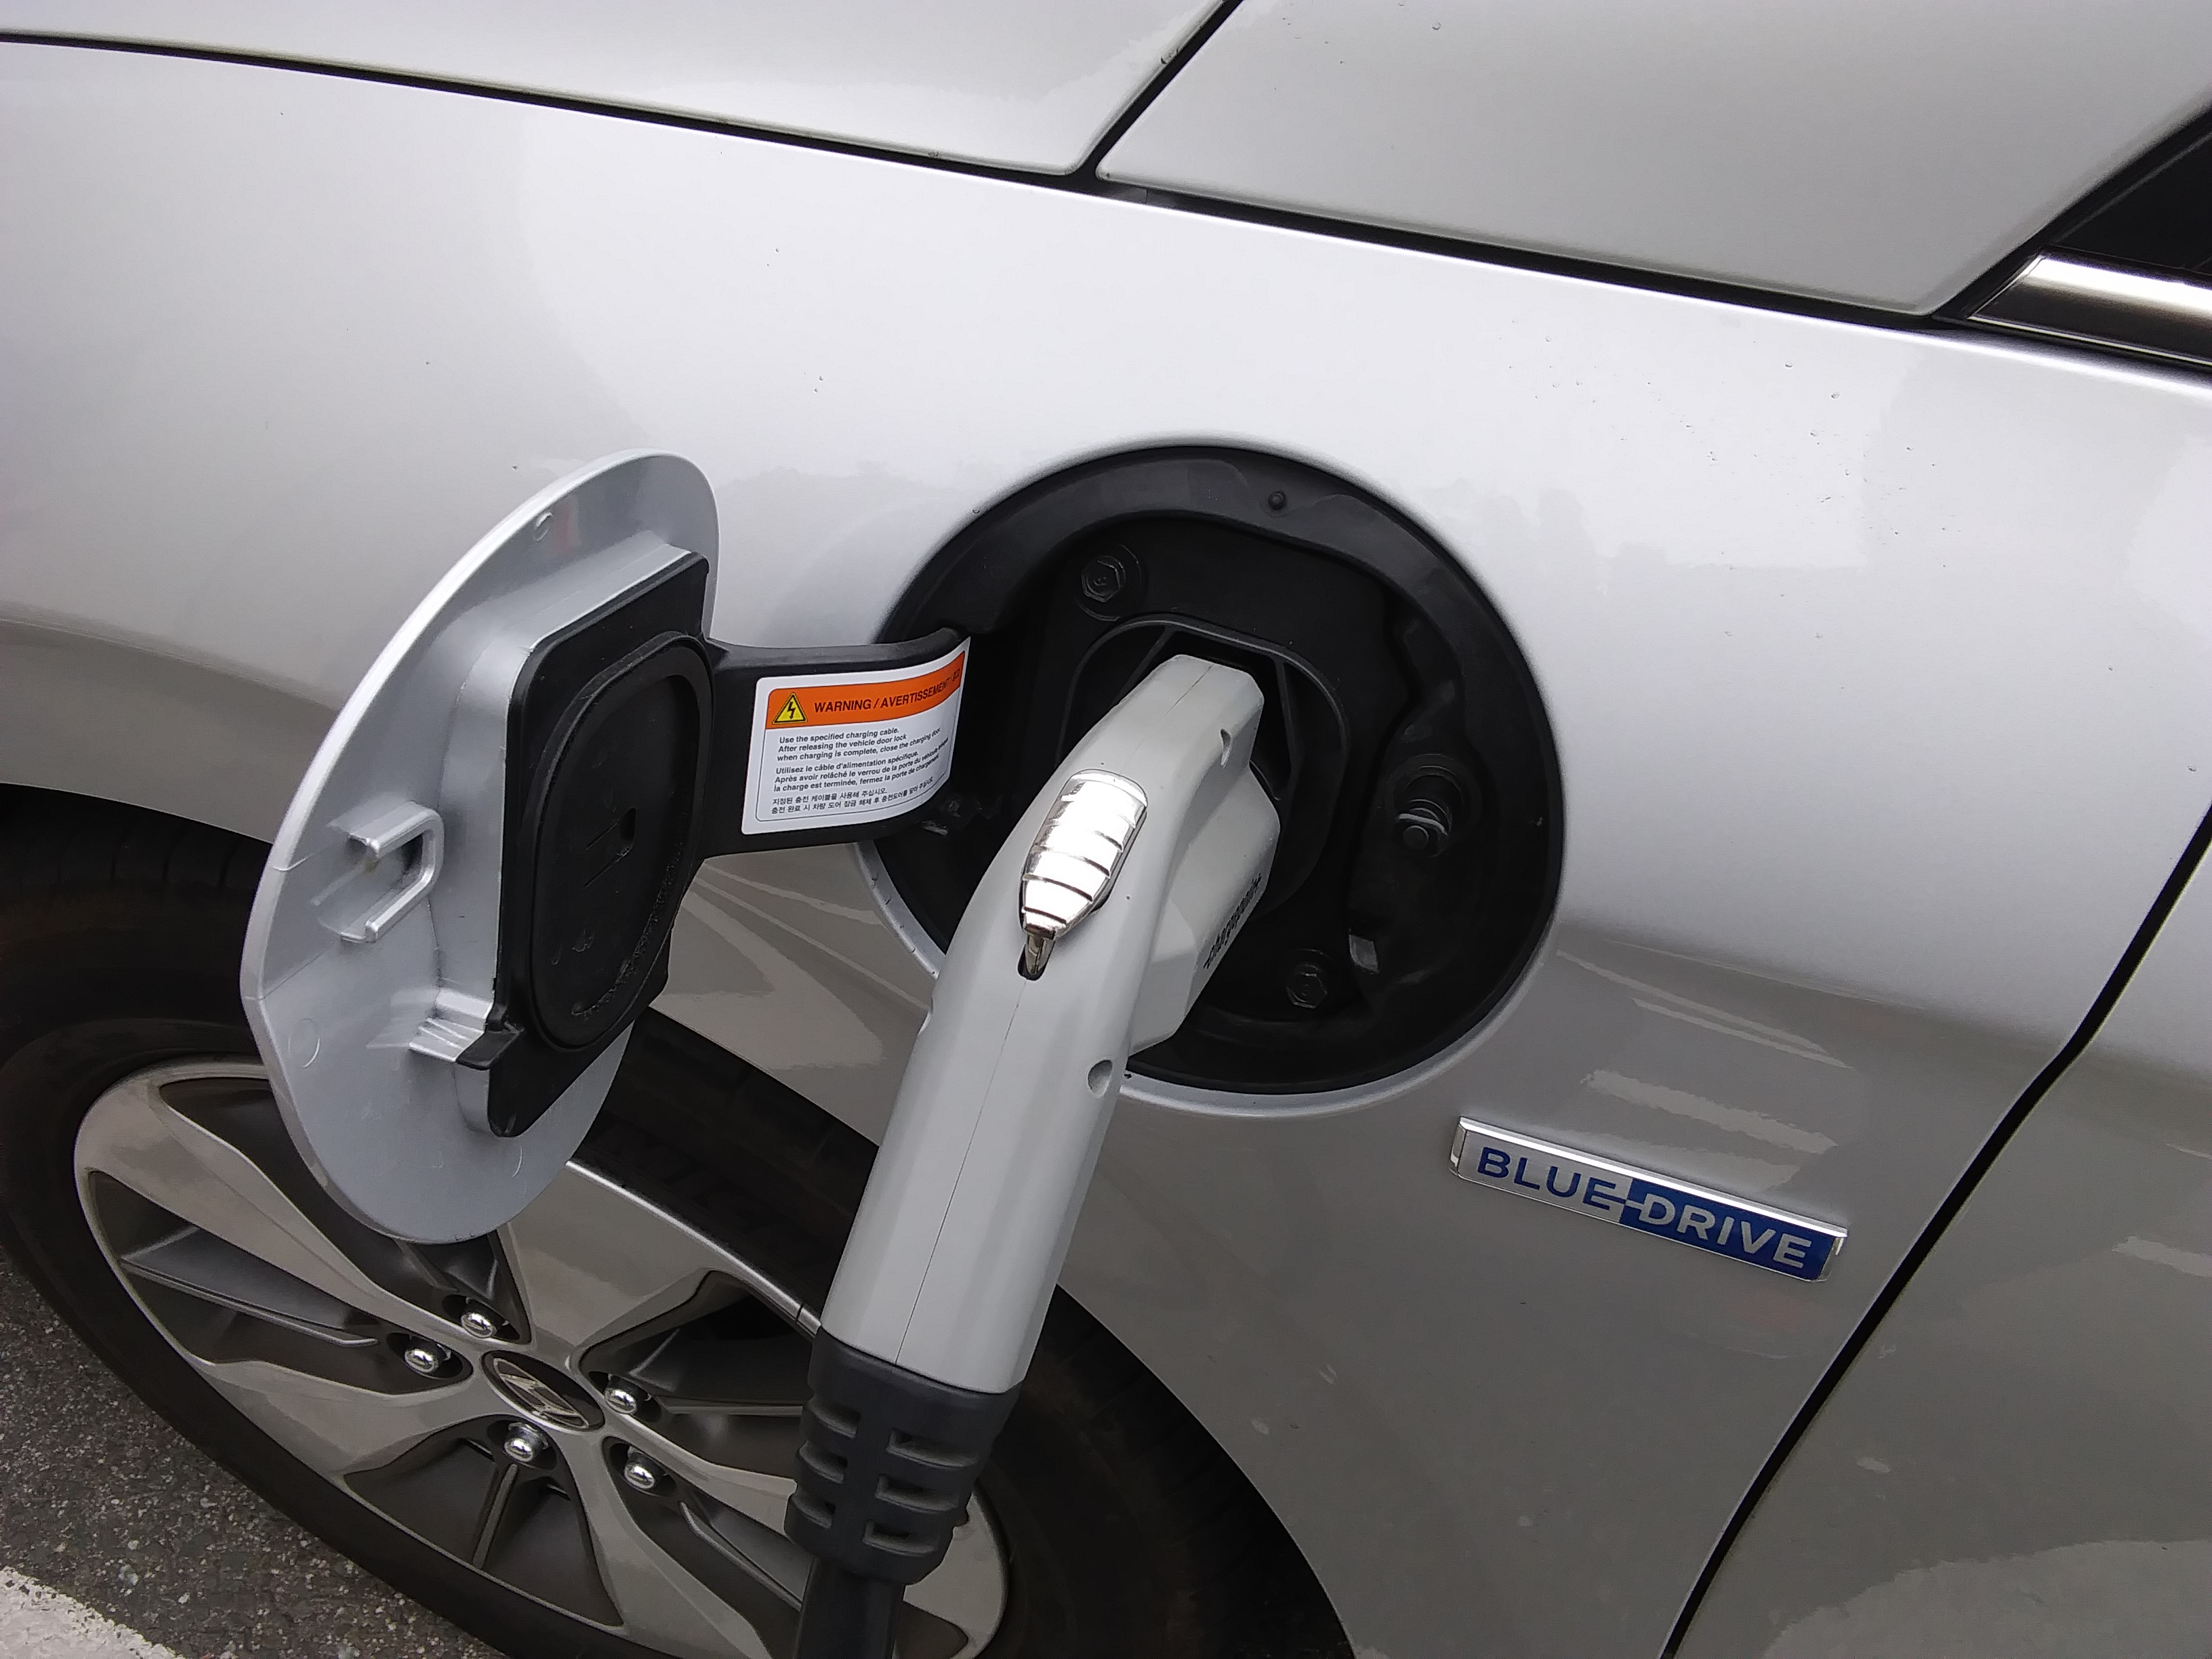 The Ioniq Uses Same Sae Charging Ports And Plug As Does Every Other Electric Cars Save Tesla You Won T Have Trouble It Most Anywhere On